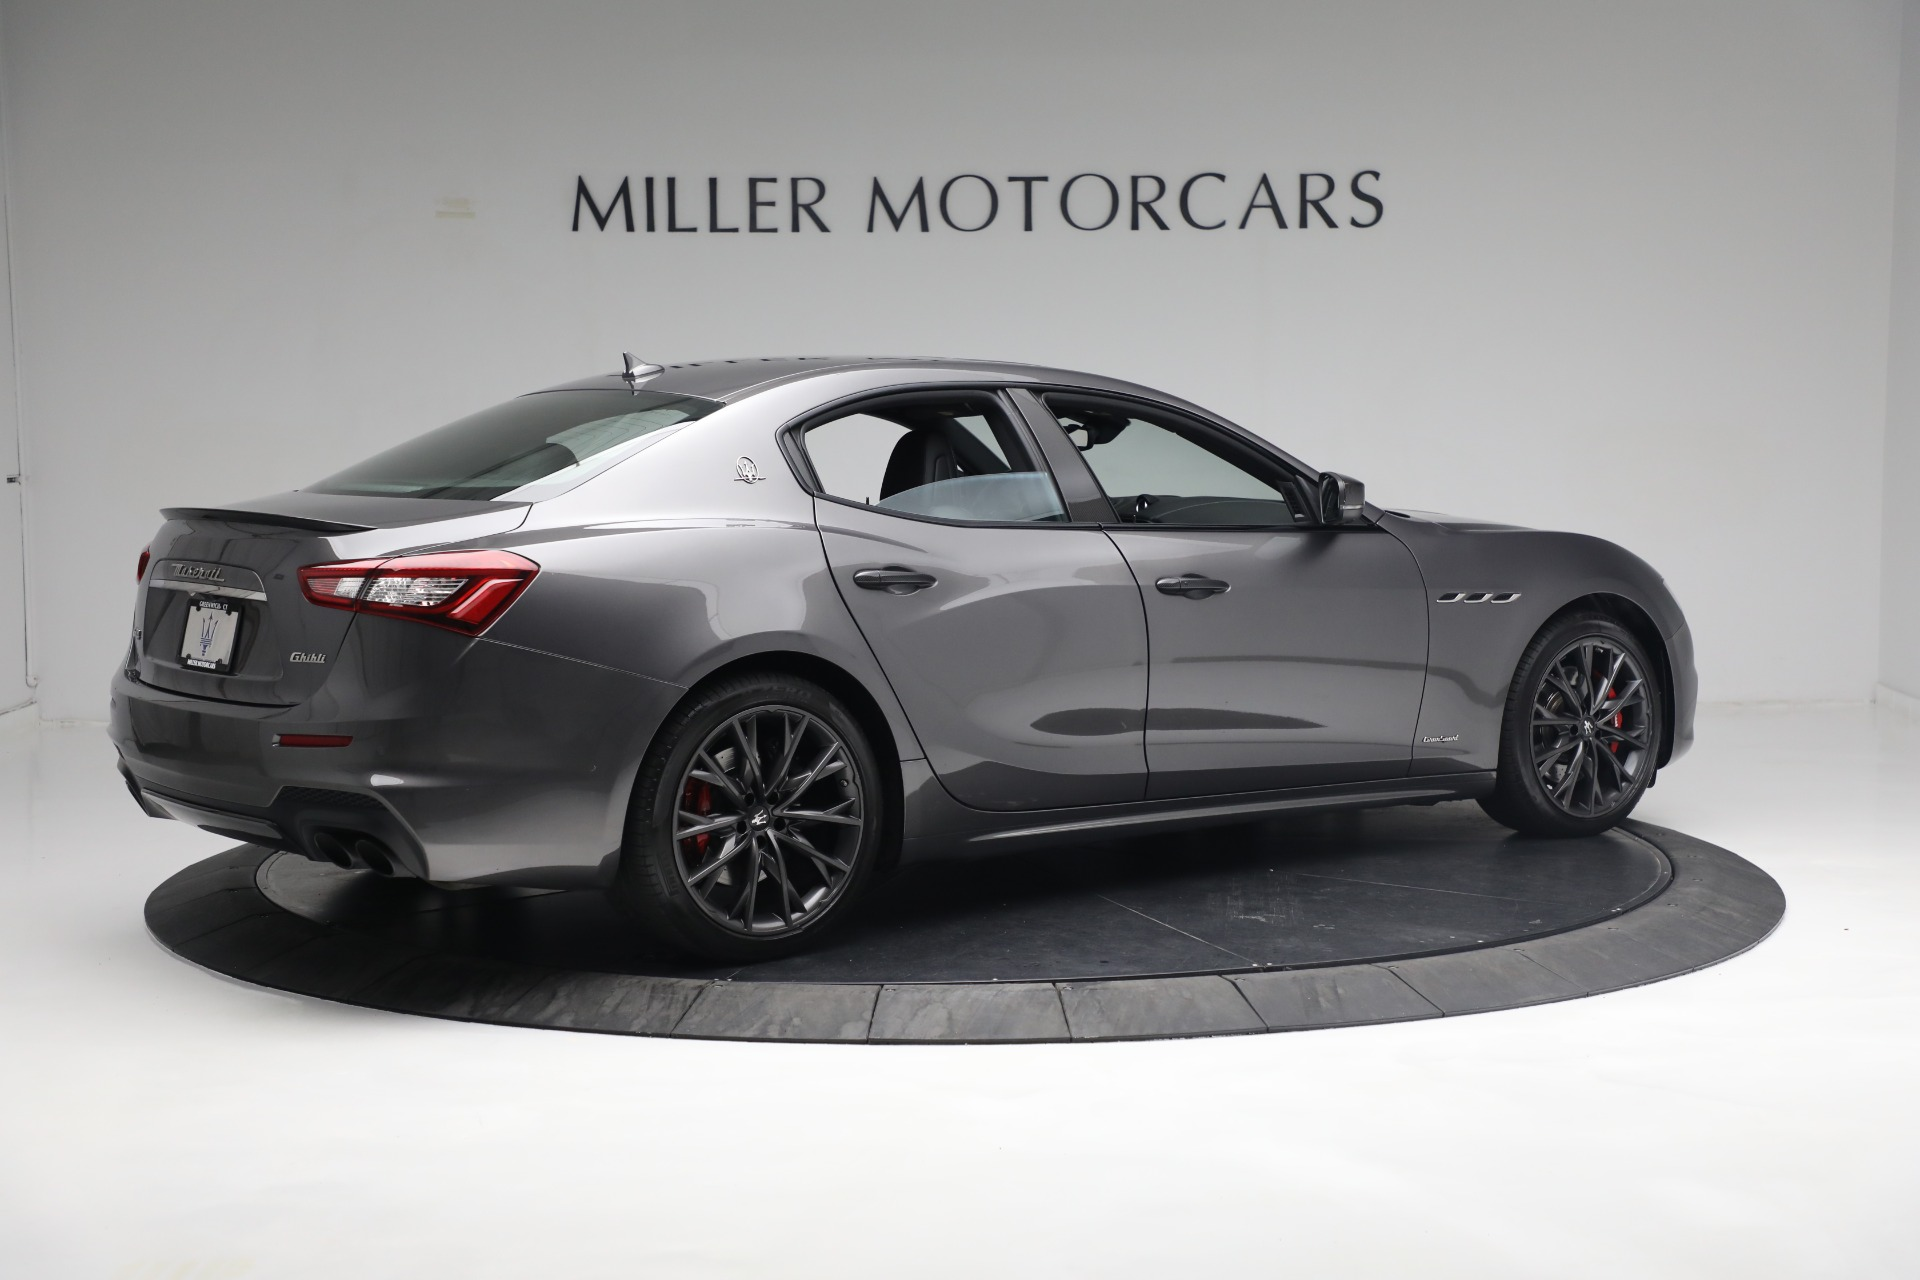 New 2019 Maserati Ghibli S Q4 GranSport For Sale In Westport, CT 2927_p8